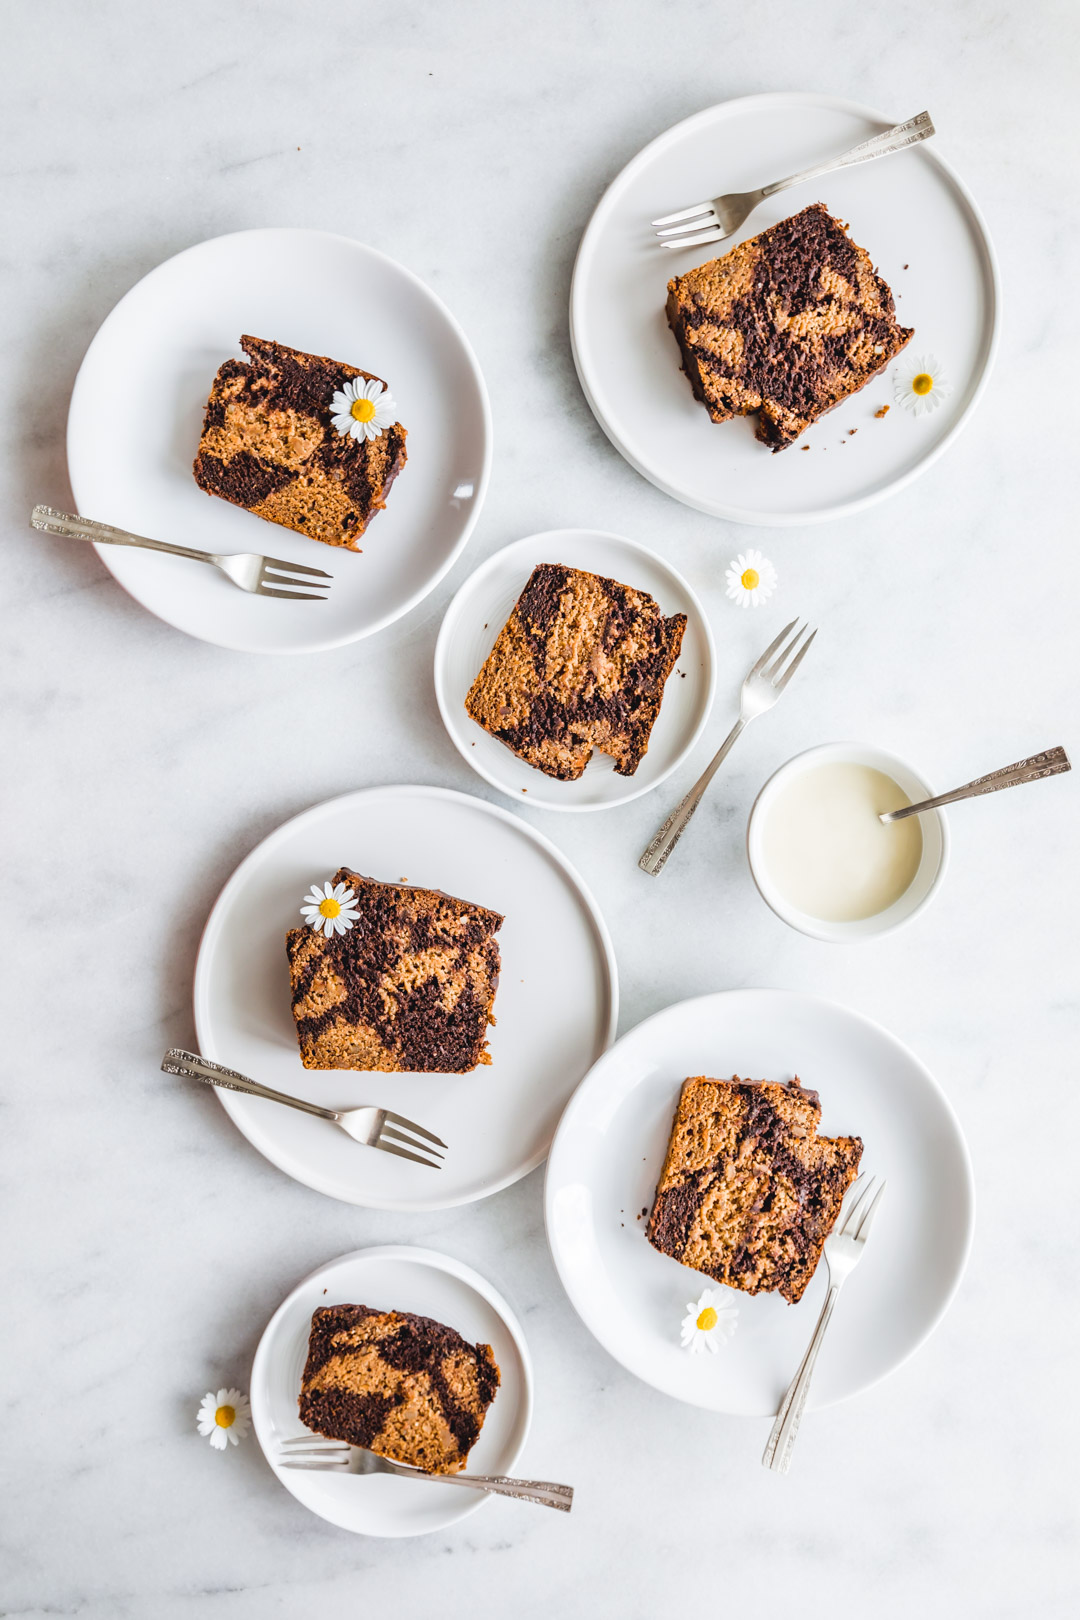 Vegan Gluten-free Chocolate Peanut Butter Banana Bread